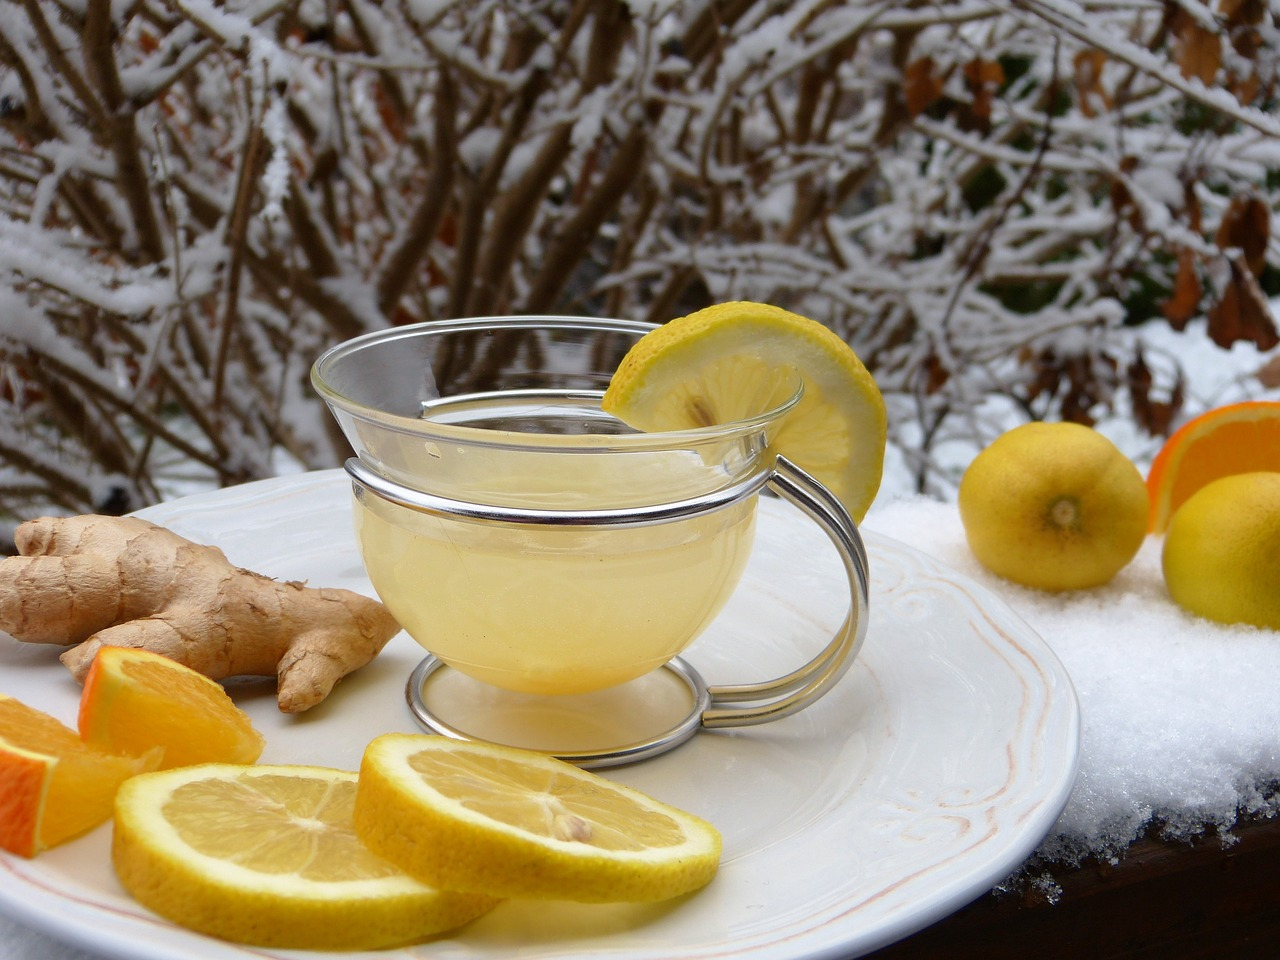 A glass tea cup and lemons and ginger on a plate to help preventing sea sickness